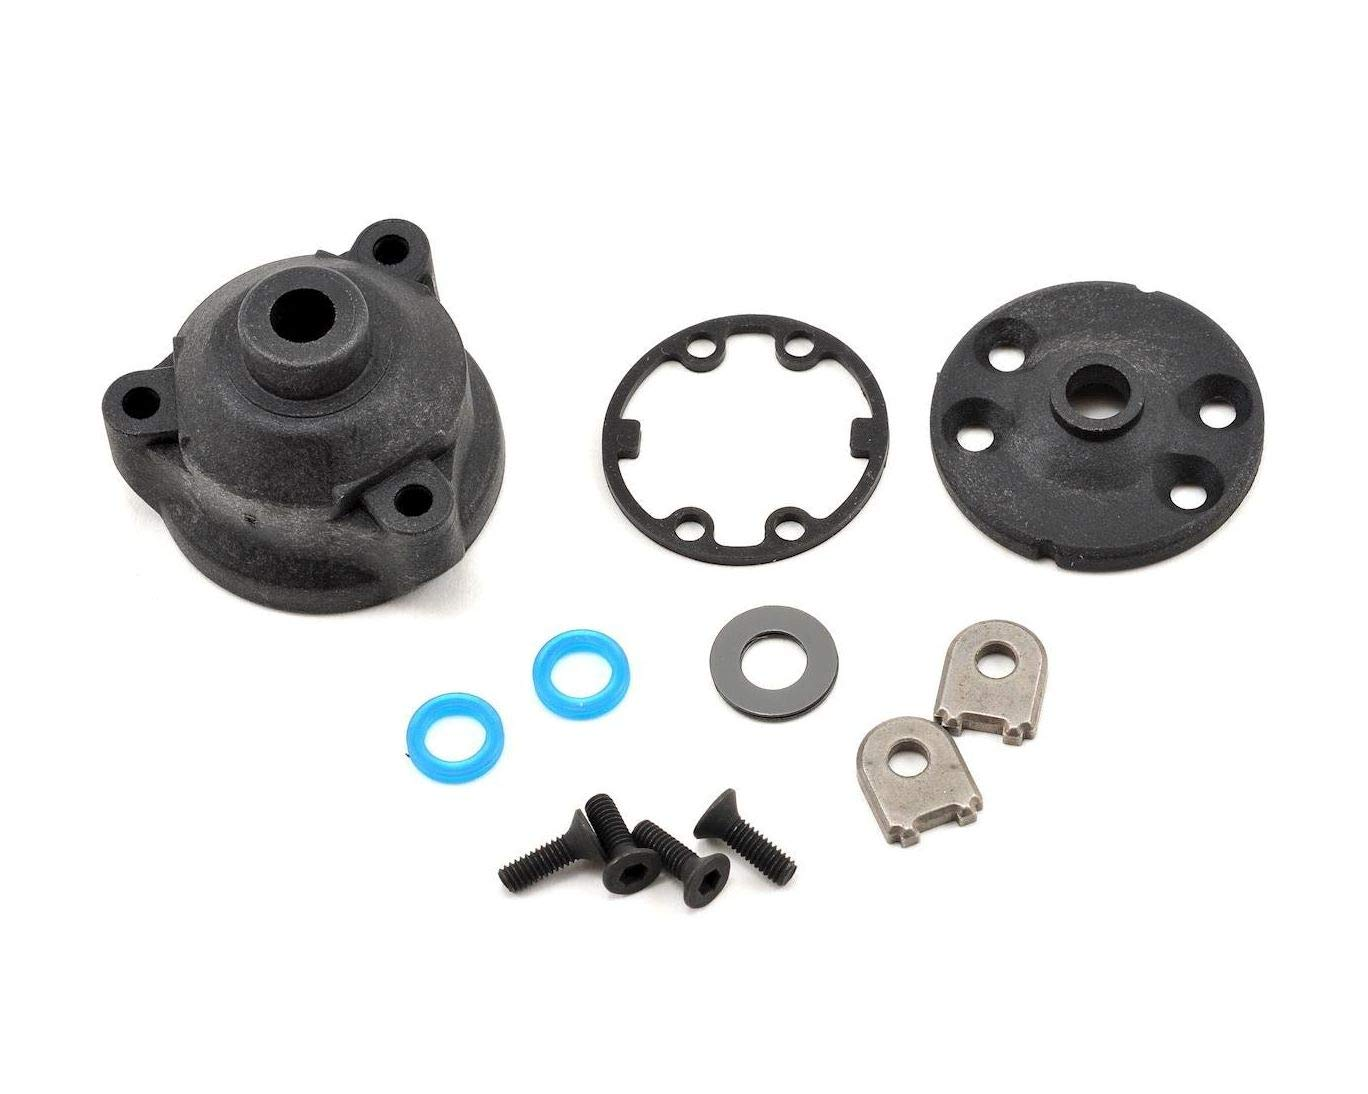 tr6884 Manufacturer regenerated product TRA6884 TTraxxass Center Housing Industry No. 1 Differential traxxas6884